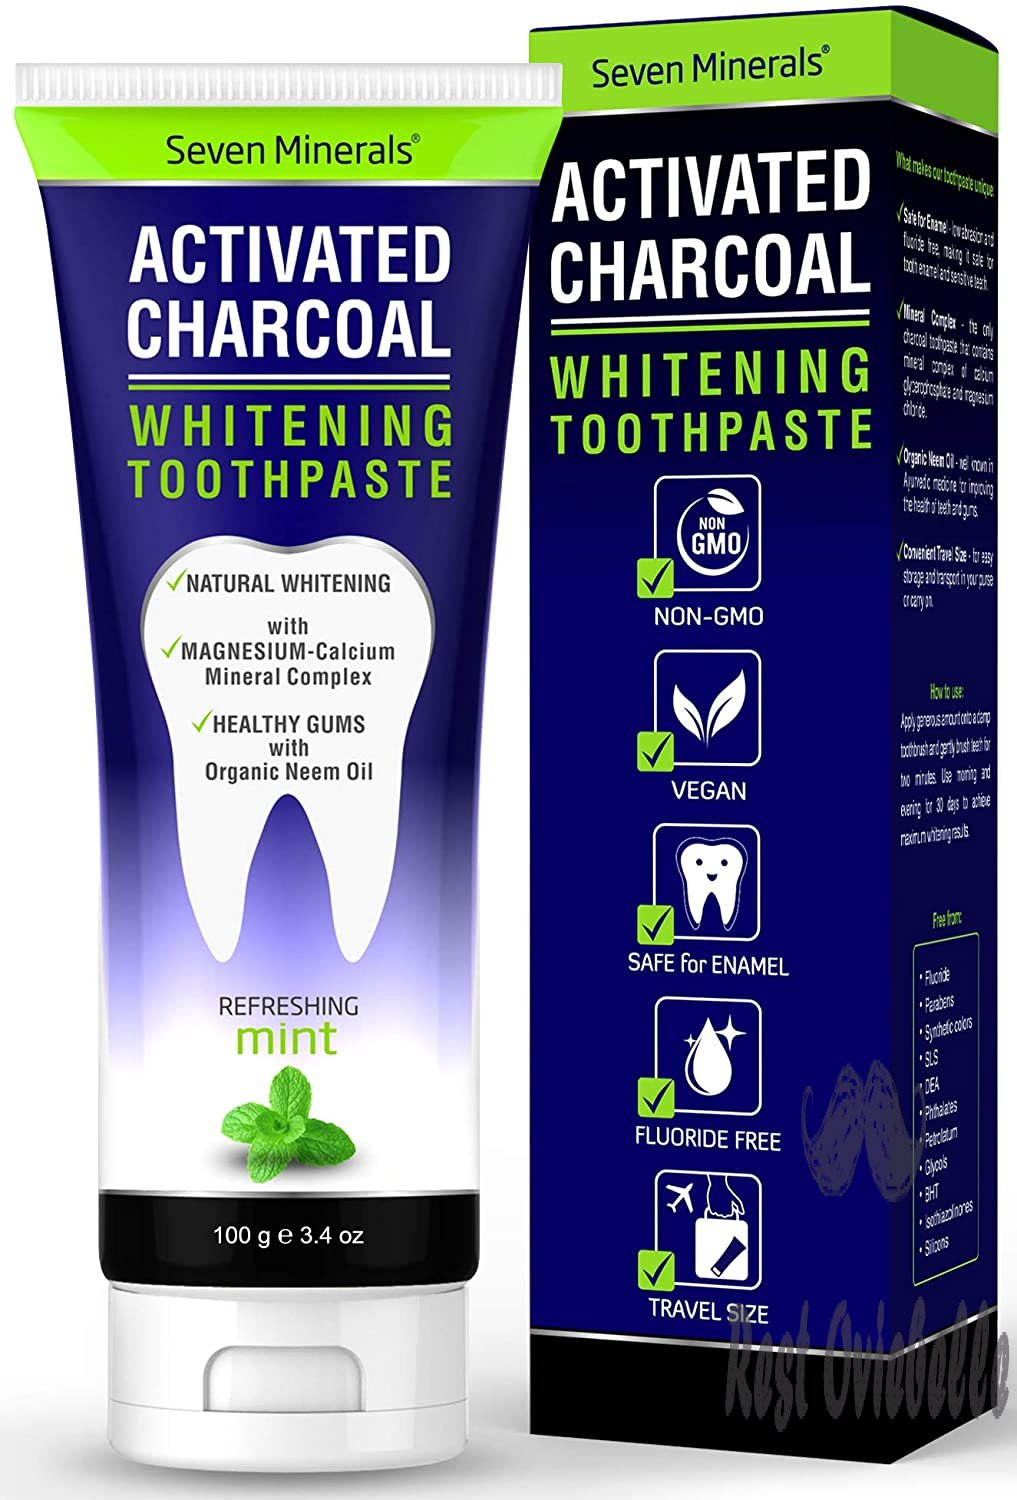 #1 Remineralizing Activated Charcoal Toothpaste